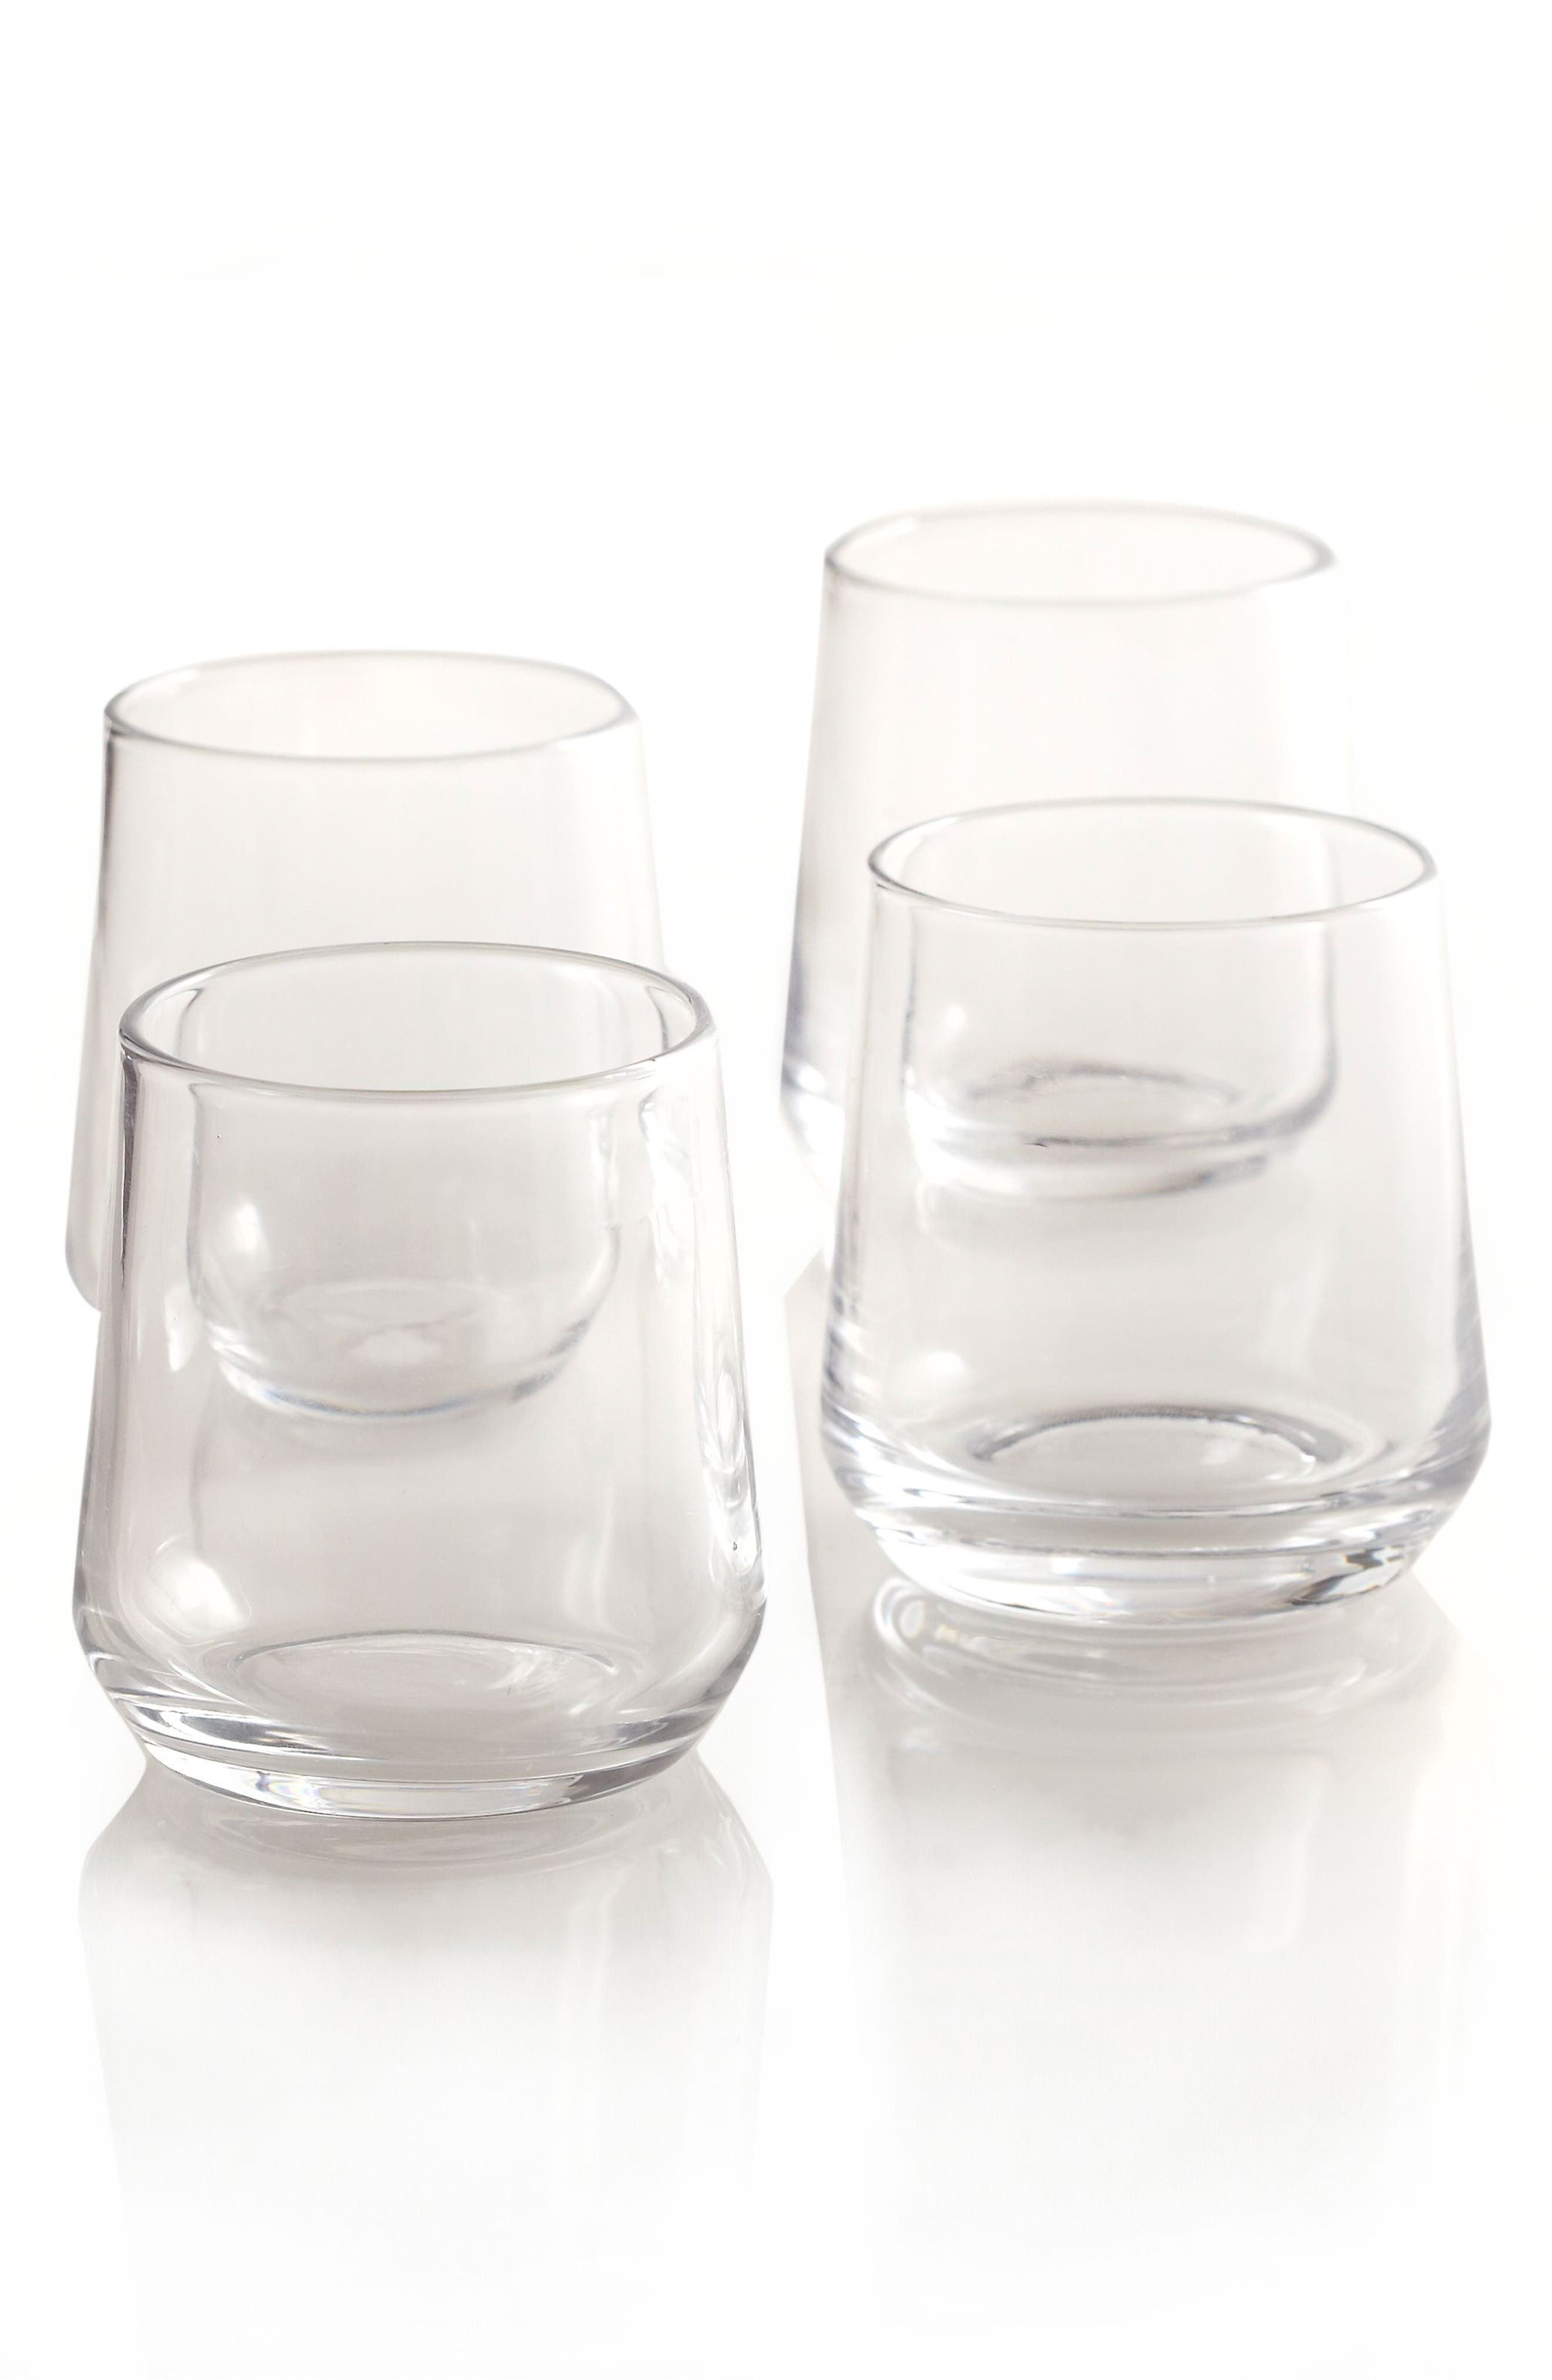 Set of 12 Tasting Glasses,                         Main,                         color, Clear